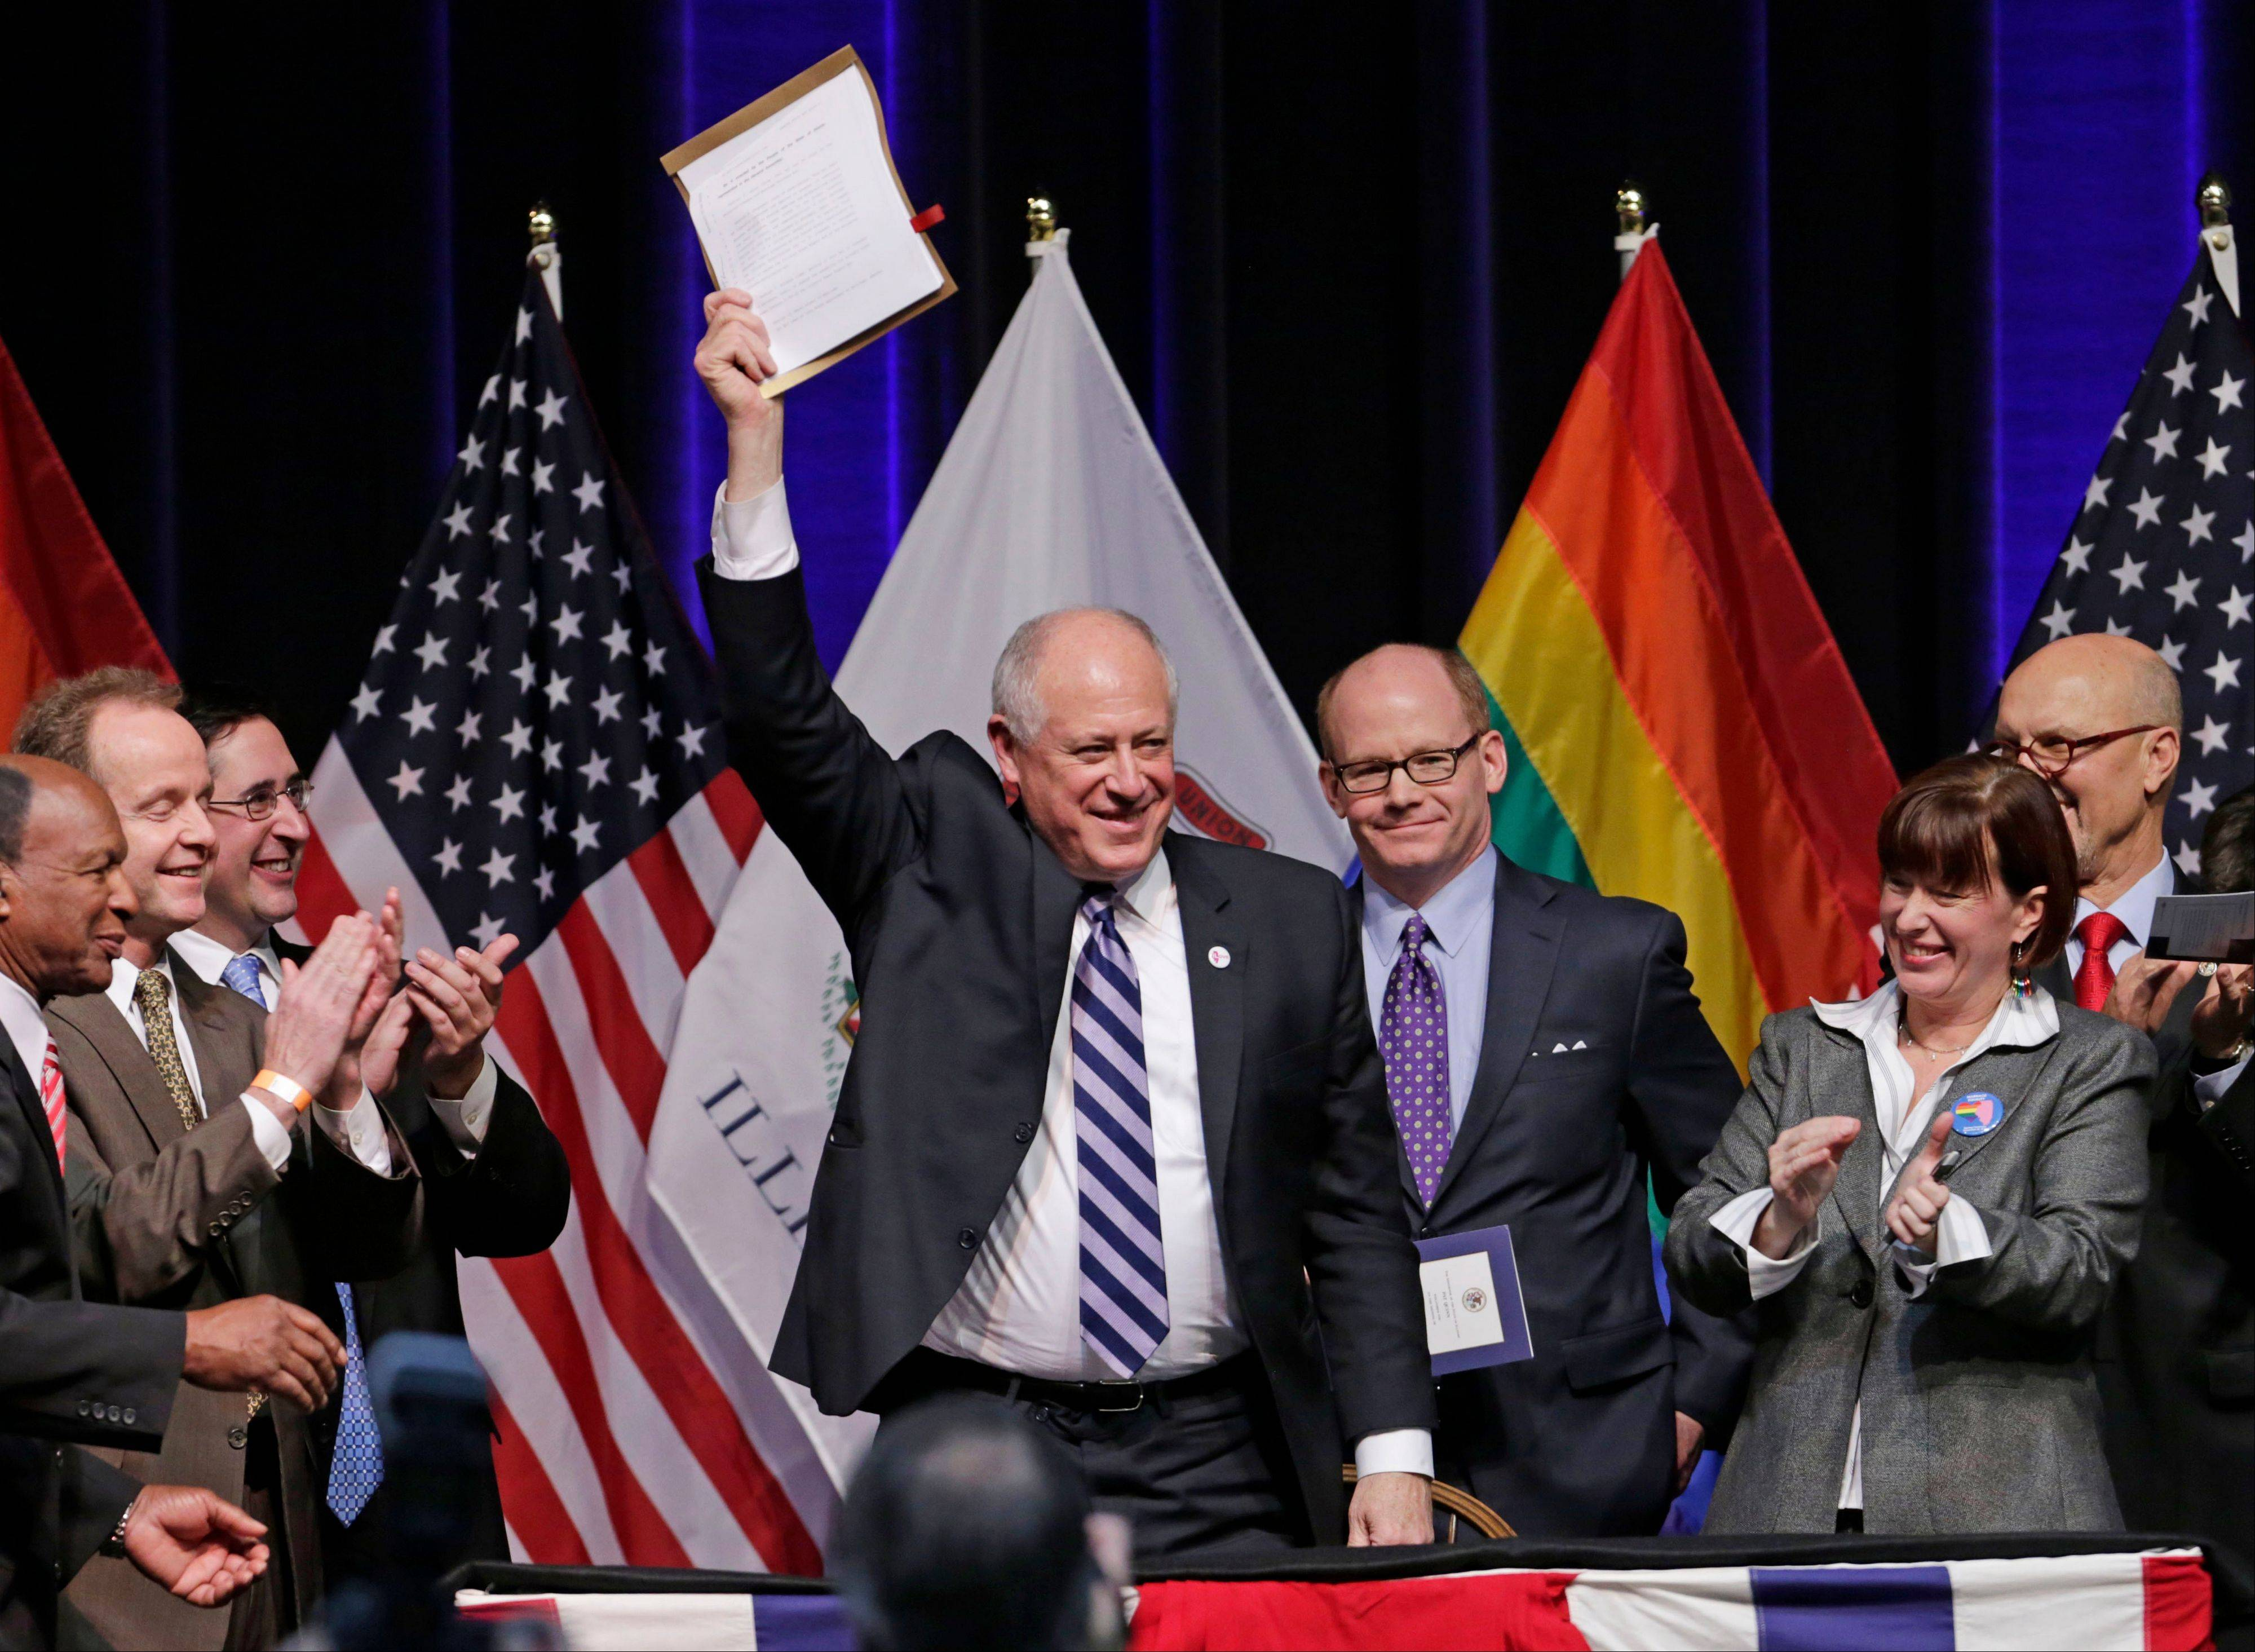 Illinois Gov. Pat Quinn acknowledges the applause after signing the Religious Freedom and Marriage Fairness Act into law, making Illinois the 16th state in the nation to embrace full marriage equality for same sex couples, Wednesday, Nov. 20, 2013, in Chicago. The law takes effect June 1, 2014.